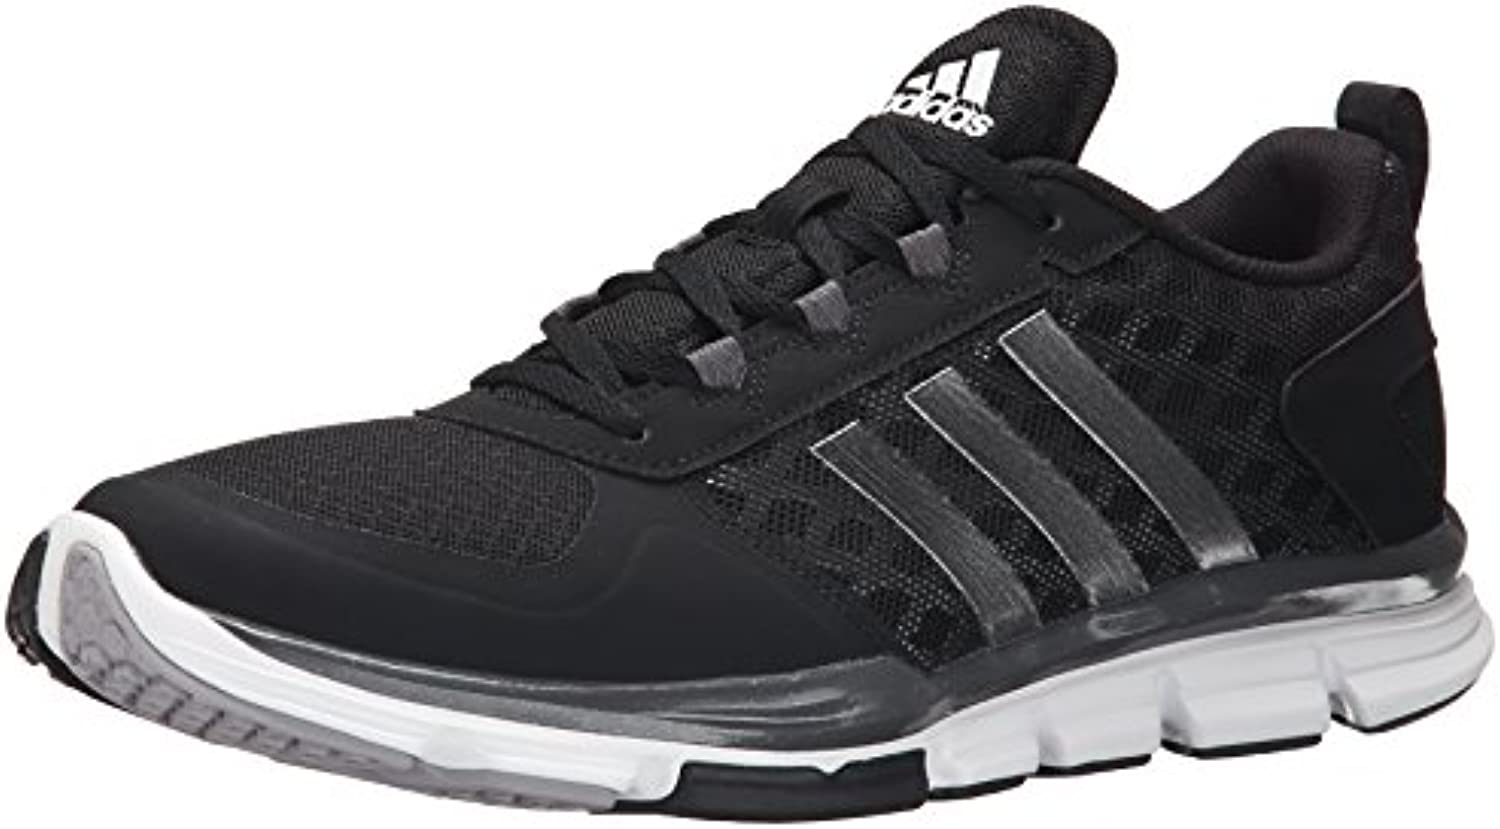 Adidas Performance Speed â??â??Trainer 2 Formación de zapatos, Negro / carbono metalizado / Oro col